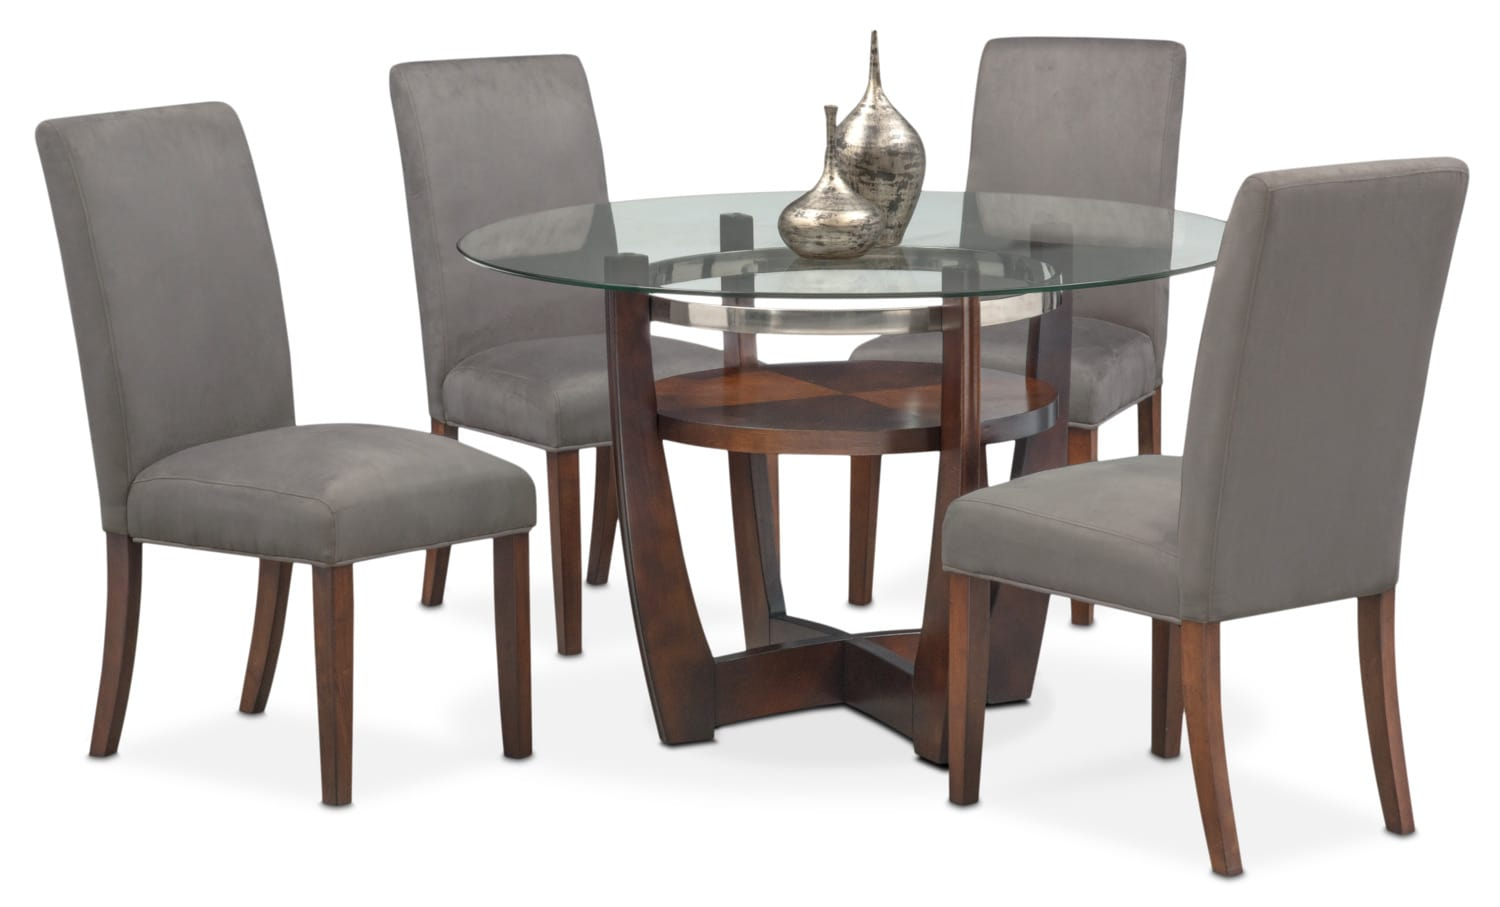 Grey Dining Room Chairs: Alcove Table And 4 Side Chairs - Gray